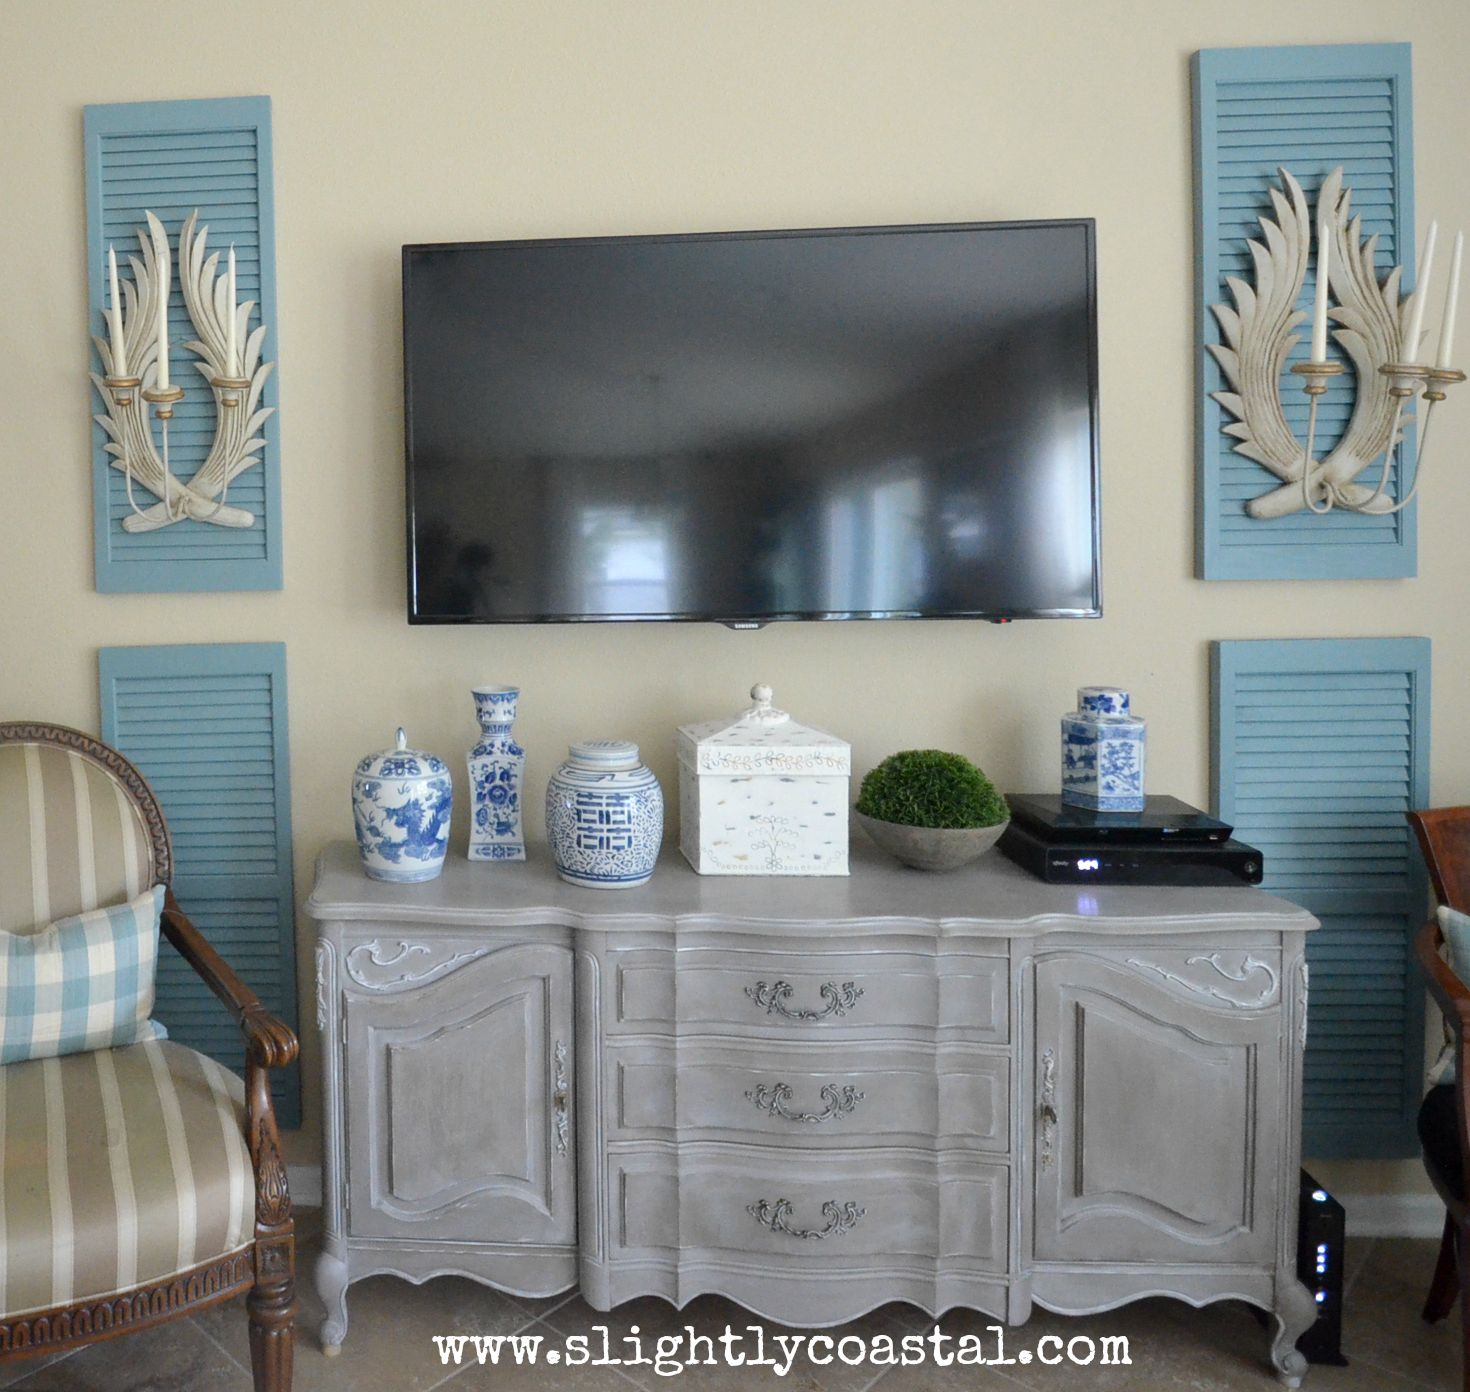 Weathered French buffet makeover - by Slightly Coastal